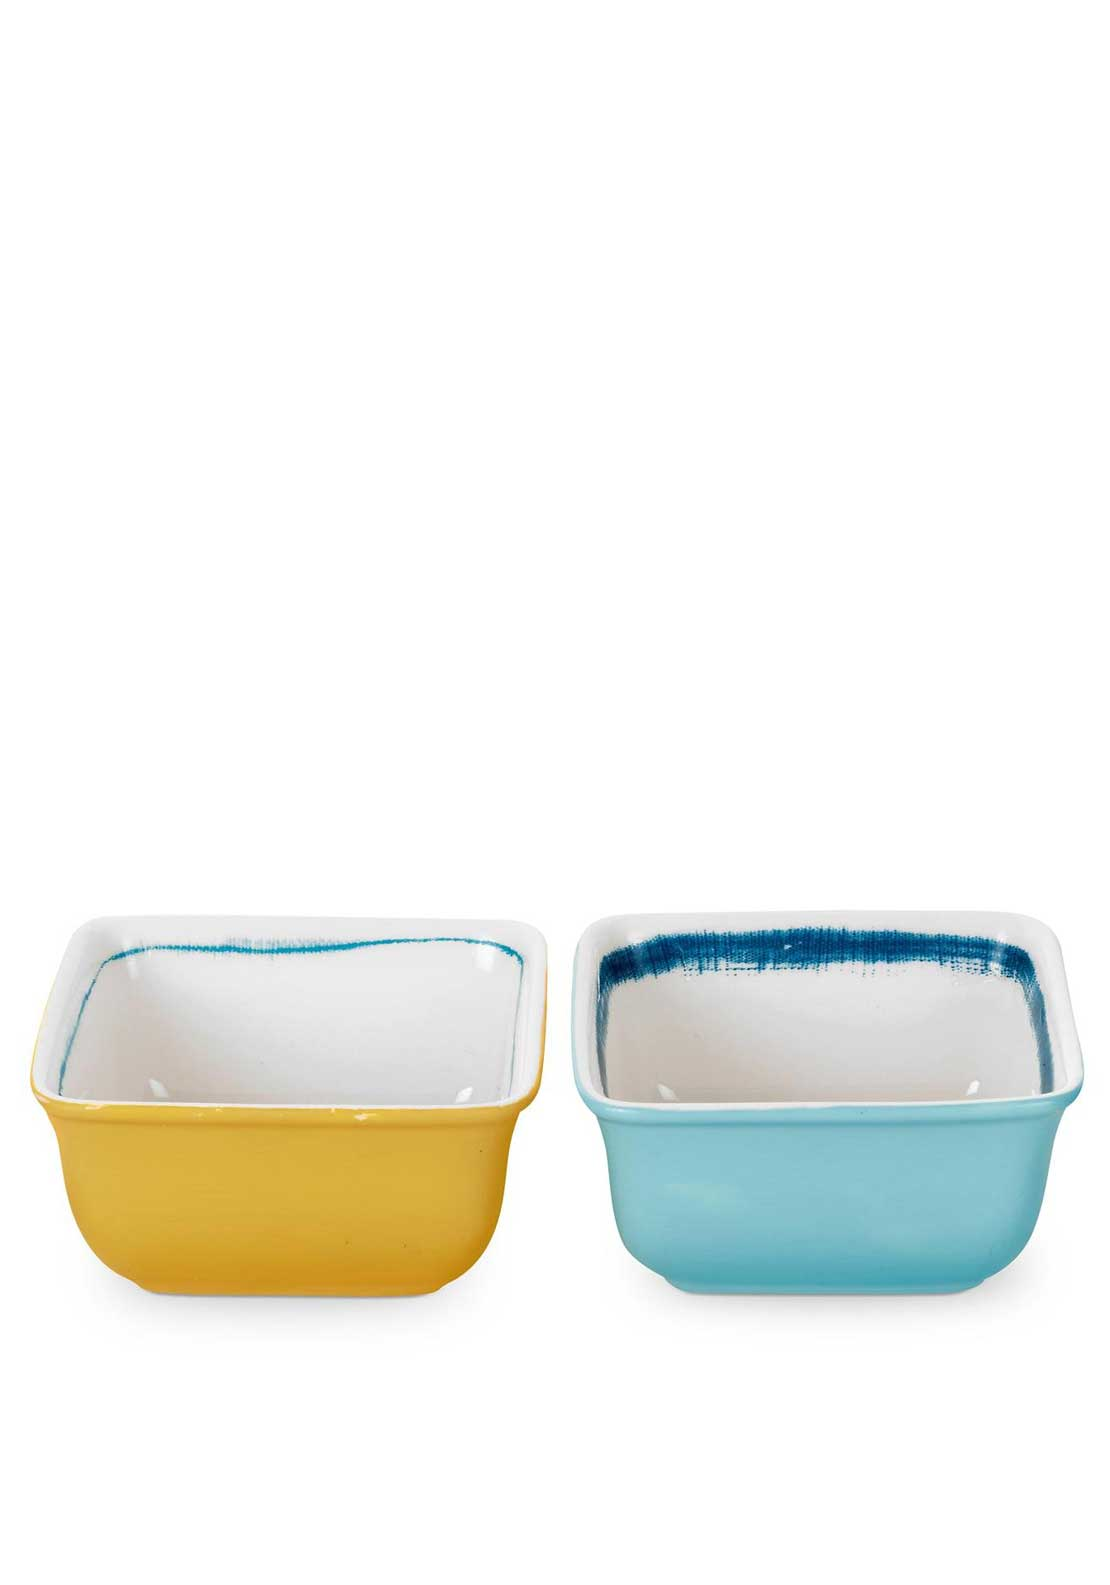 Portmeirion Coast Square Dip Bowls, Set of 2